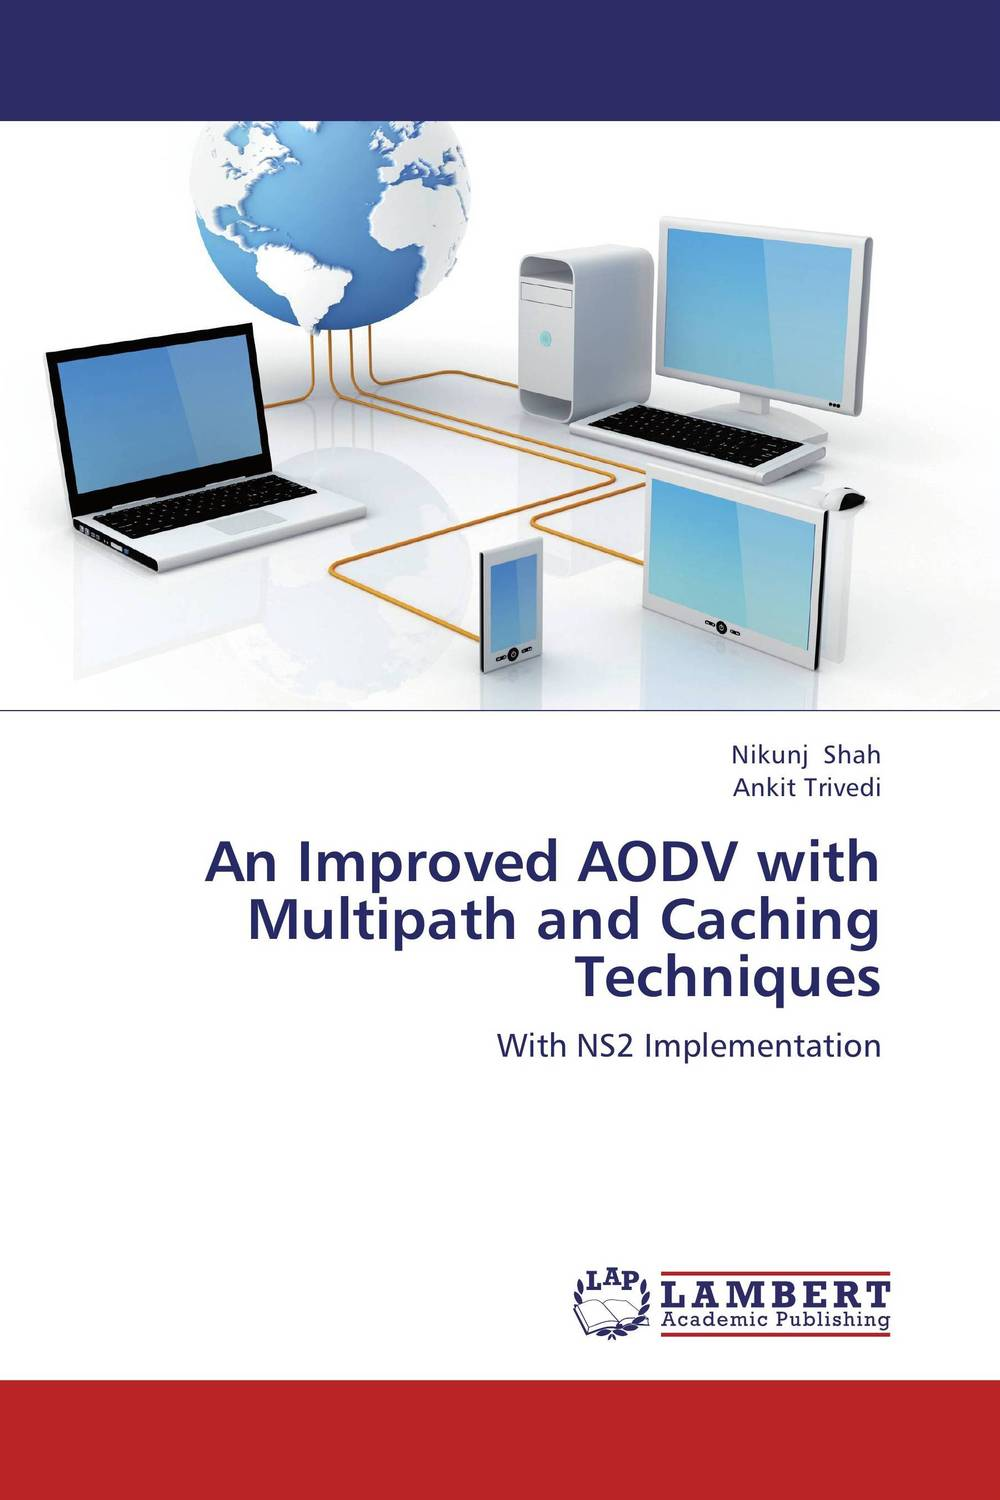 An Improved AODV with Multipath and Caching Techniques higher than the eagle soars a path to everest